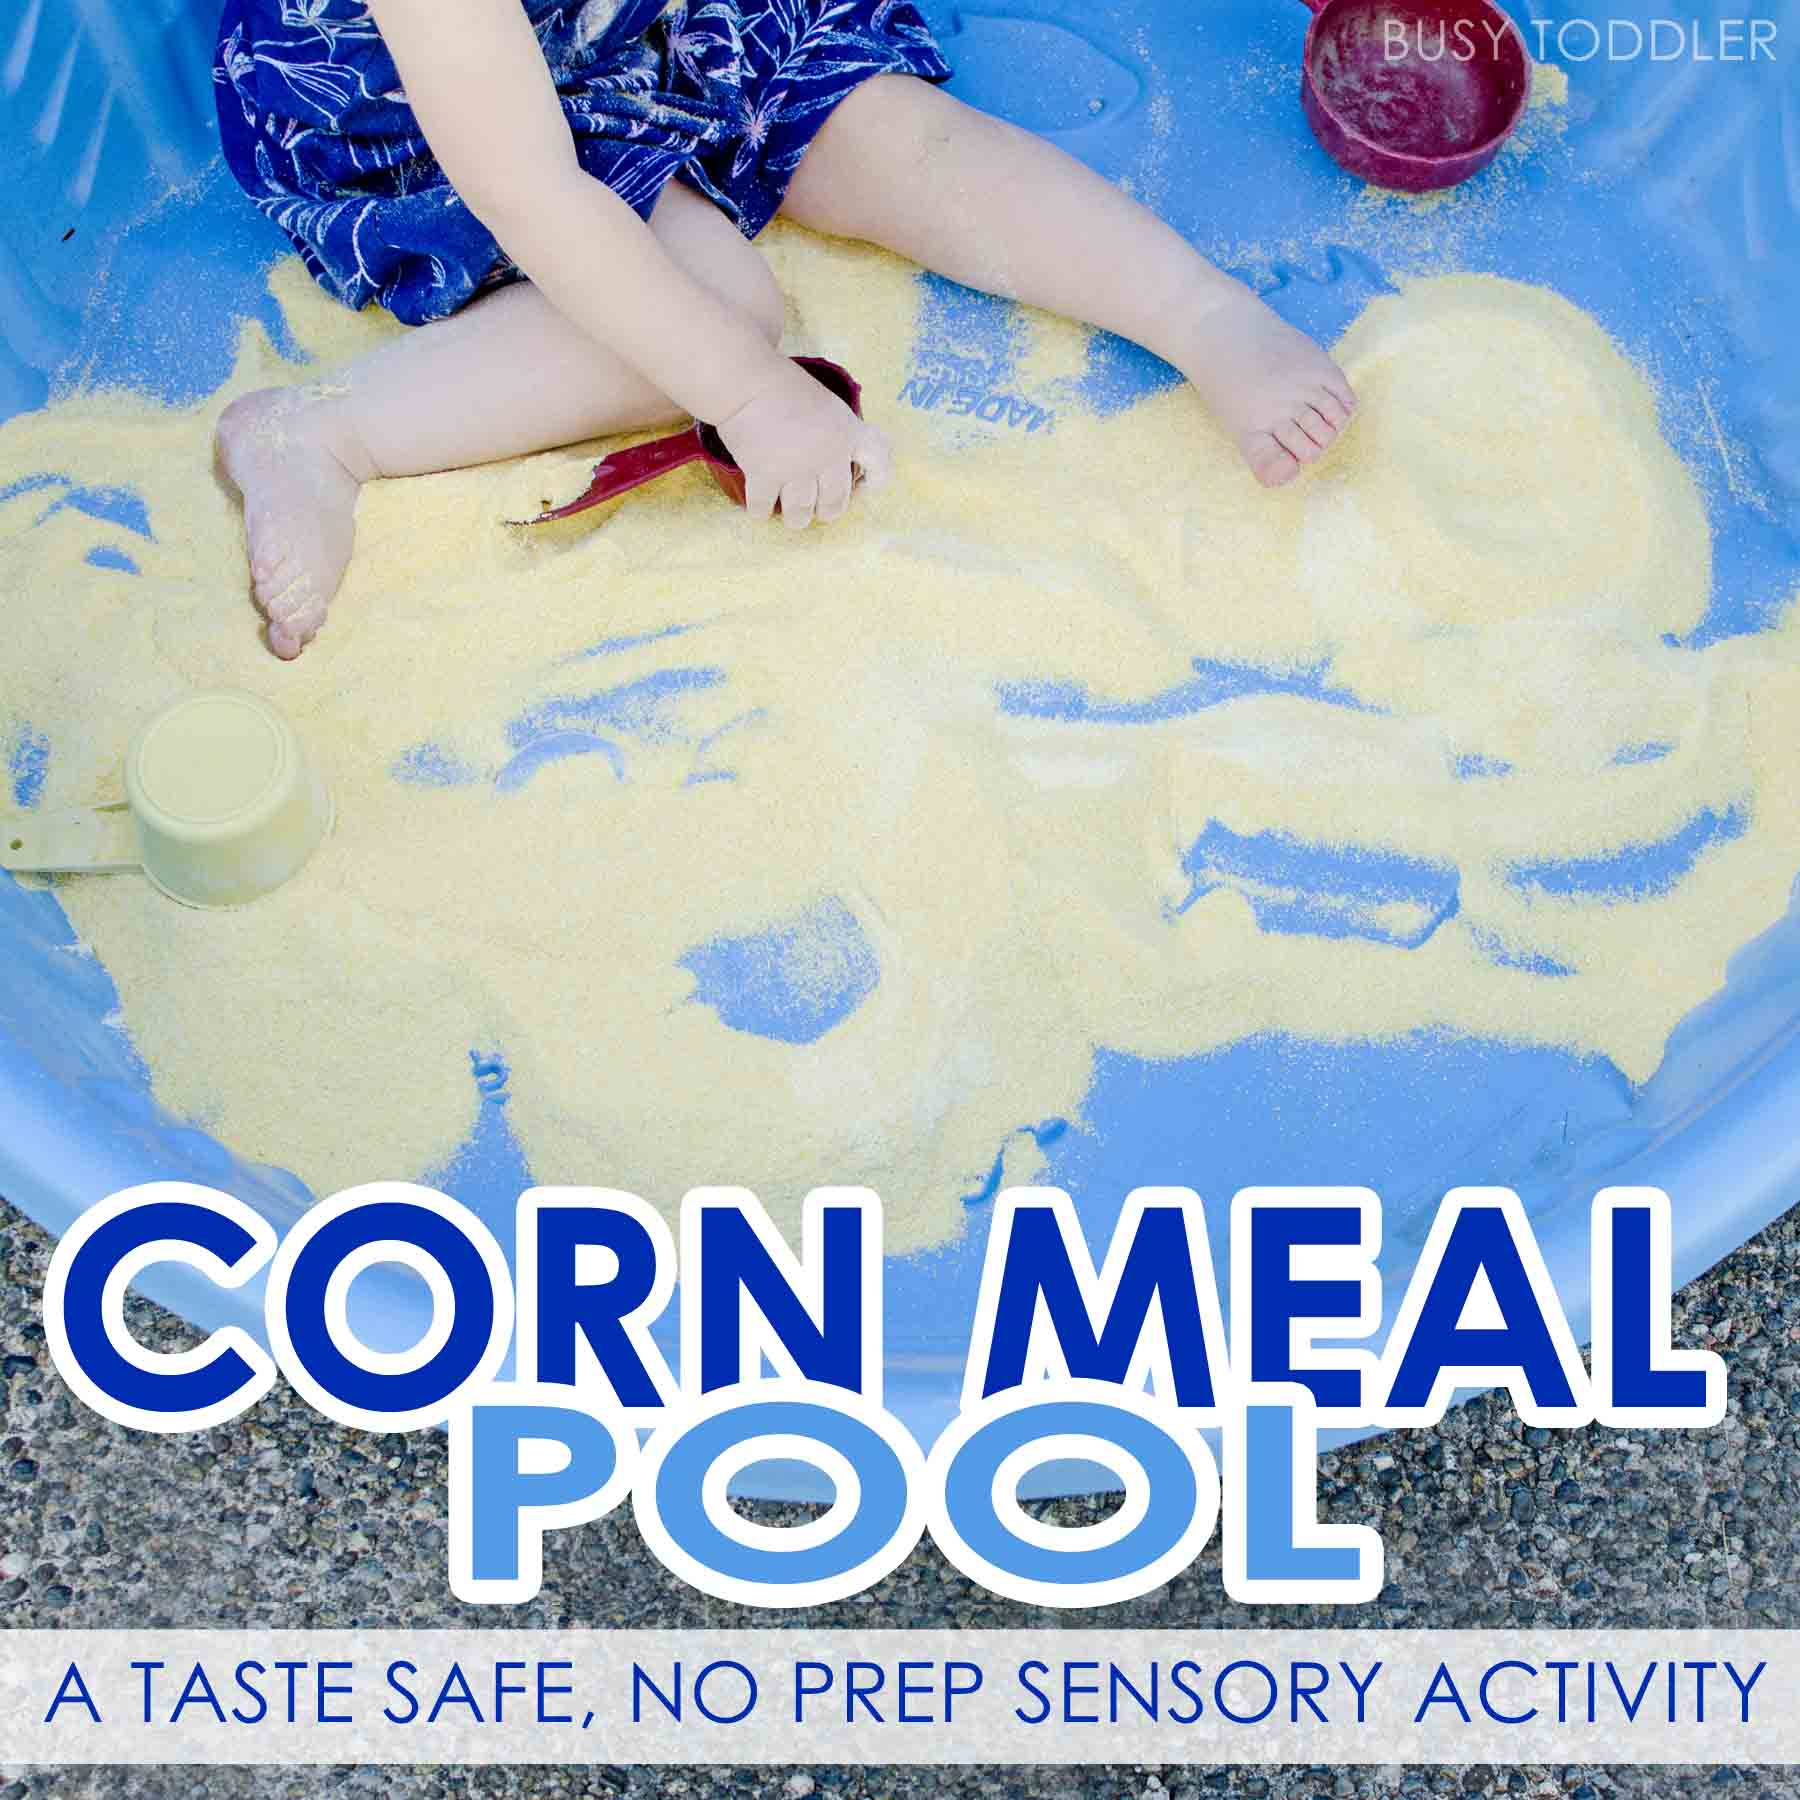 CORN MEAL SENSORY POOL: S taste safe, no prep sensory activity for toddlers, babies, and preschoolers. Kids will love this unexpected outdoor activity. Moms will love how easy it is to set up!